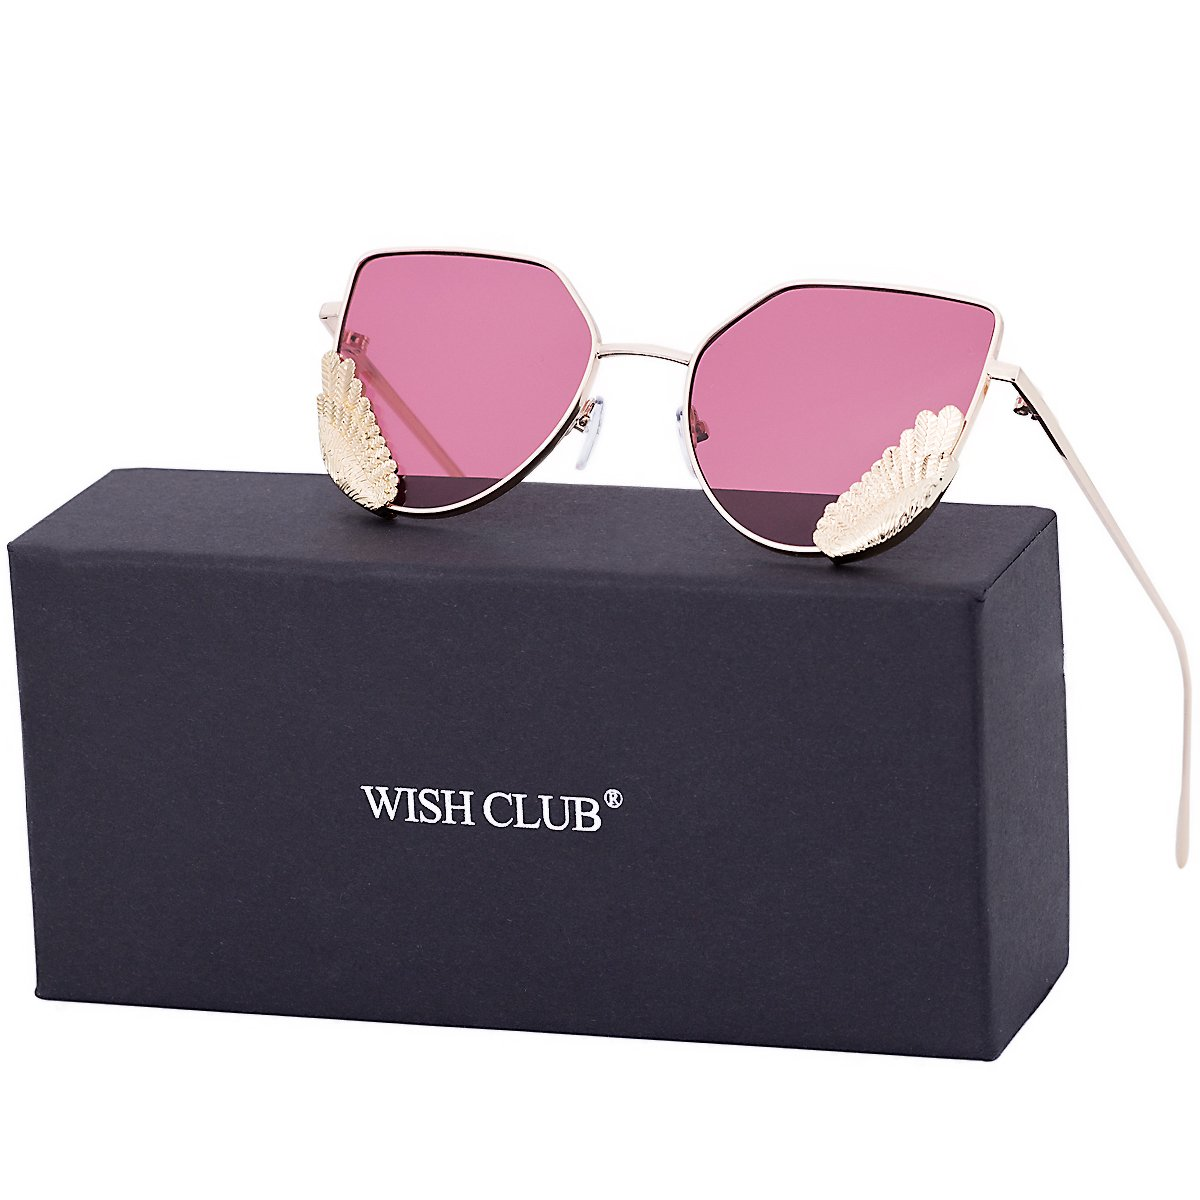 WISH CLUB Women Cat Eye Sunglasses Fashion Designer Transparent UV 400 Stylish Modern Party Glasses (Light Pink)